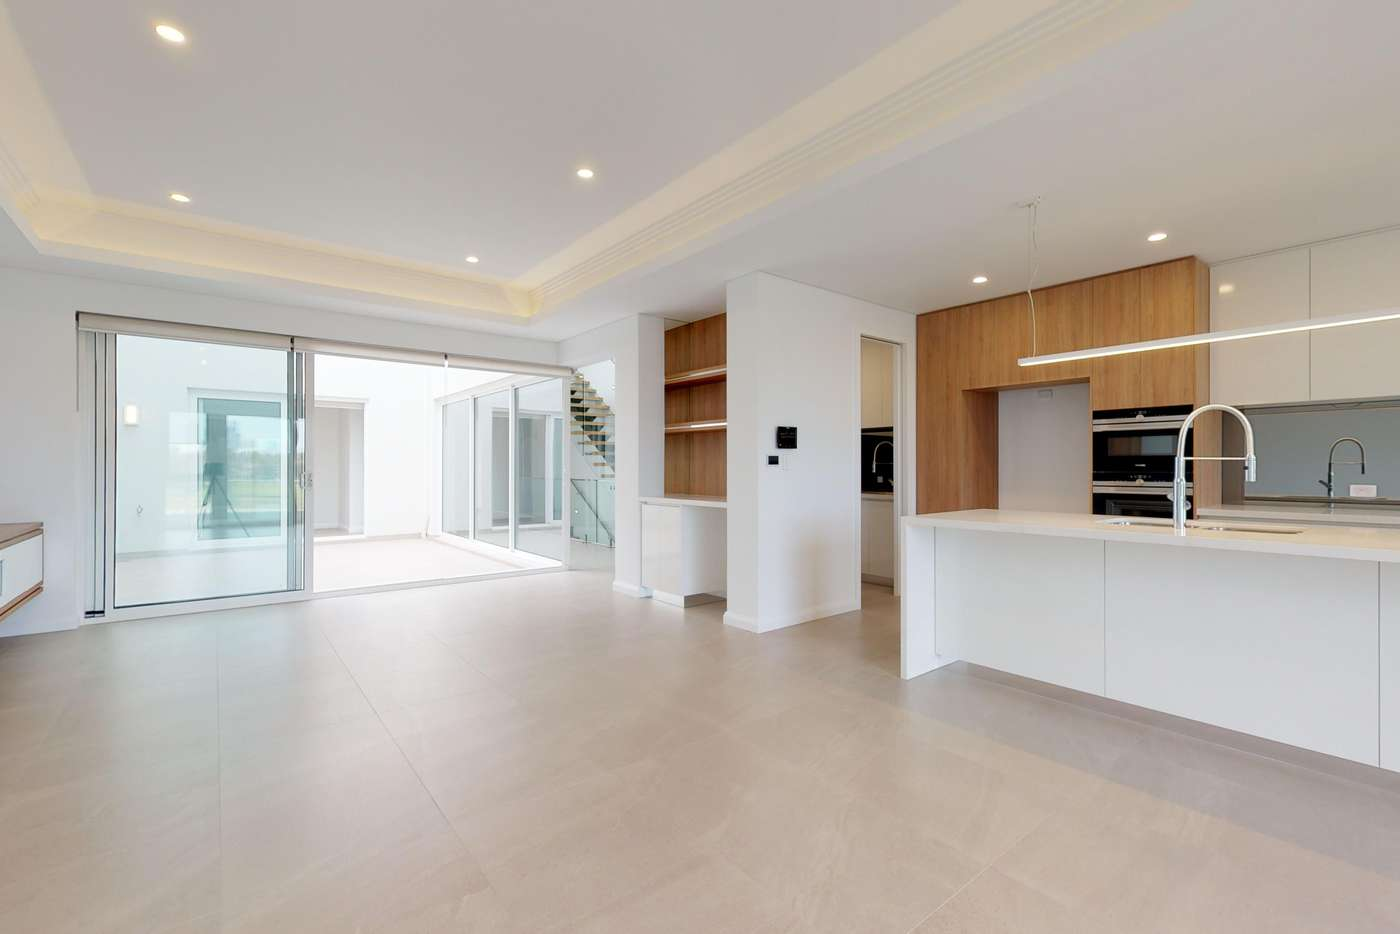 Sixth view of Homely house listing, 10 The Promenade, Burswood WA 6100